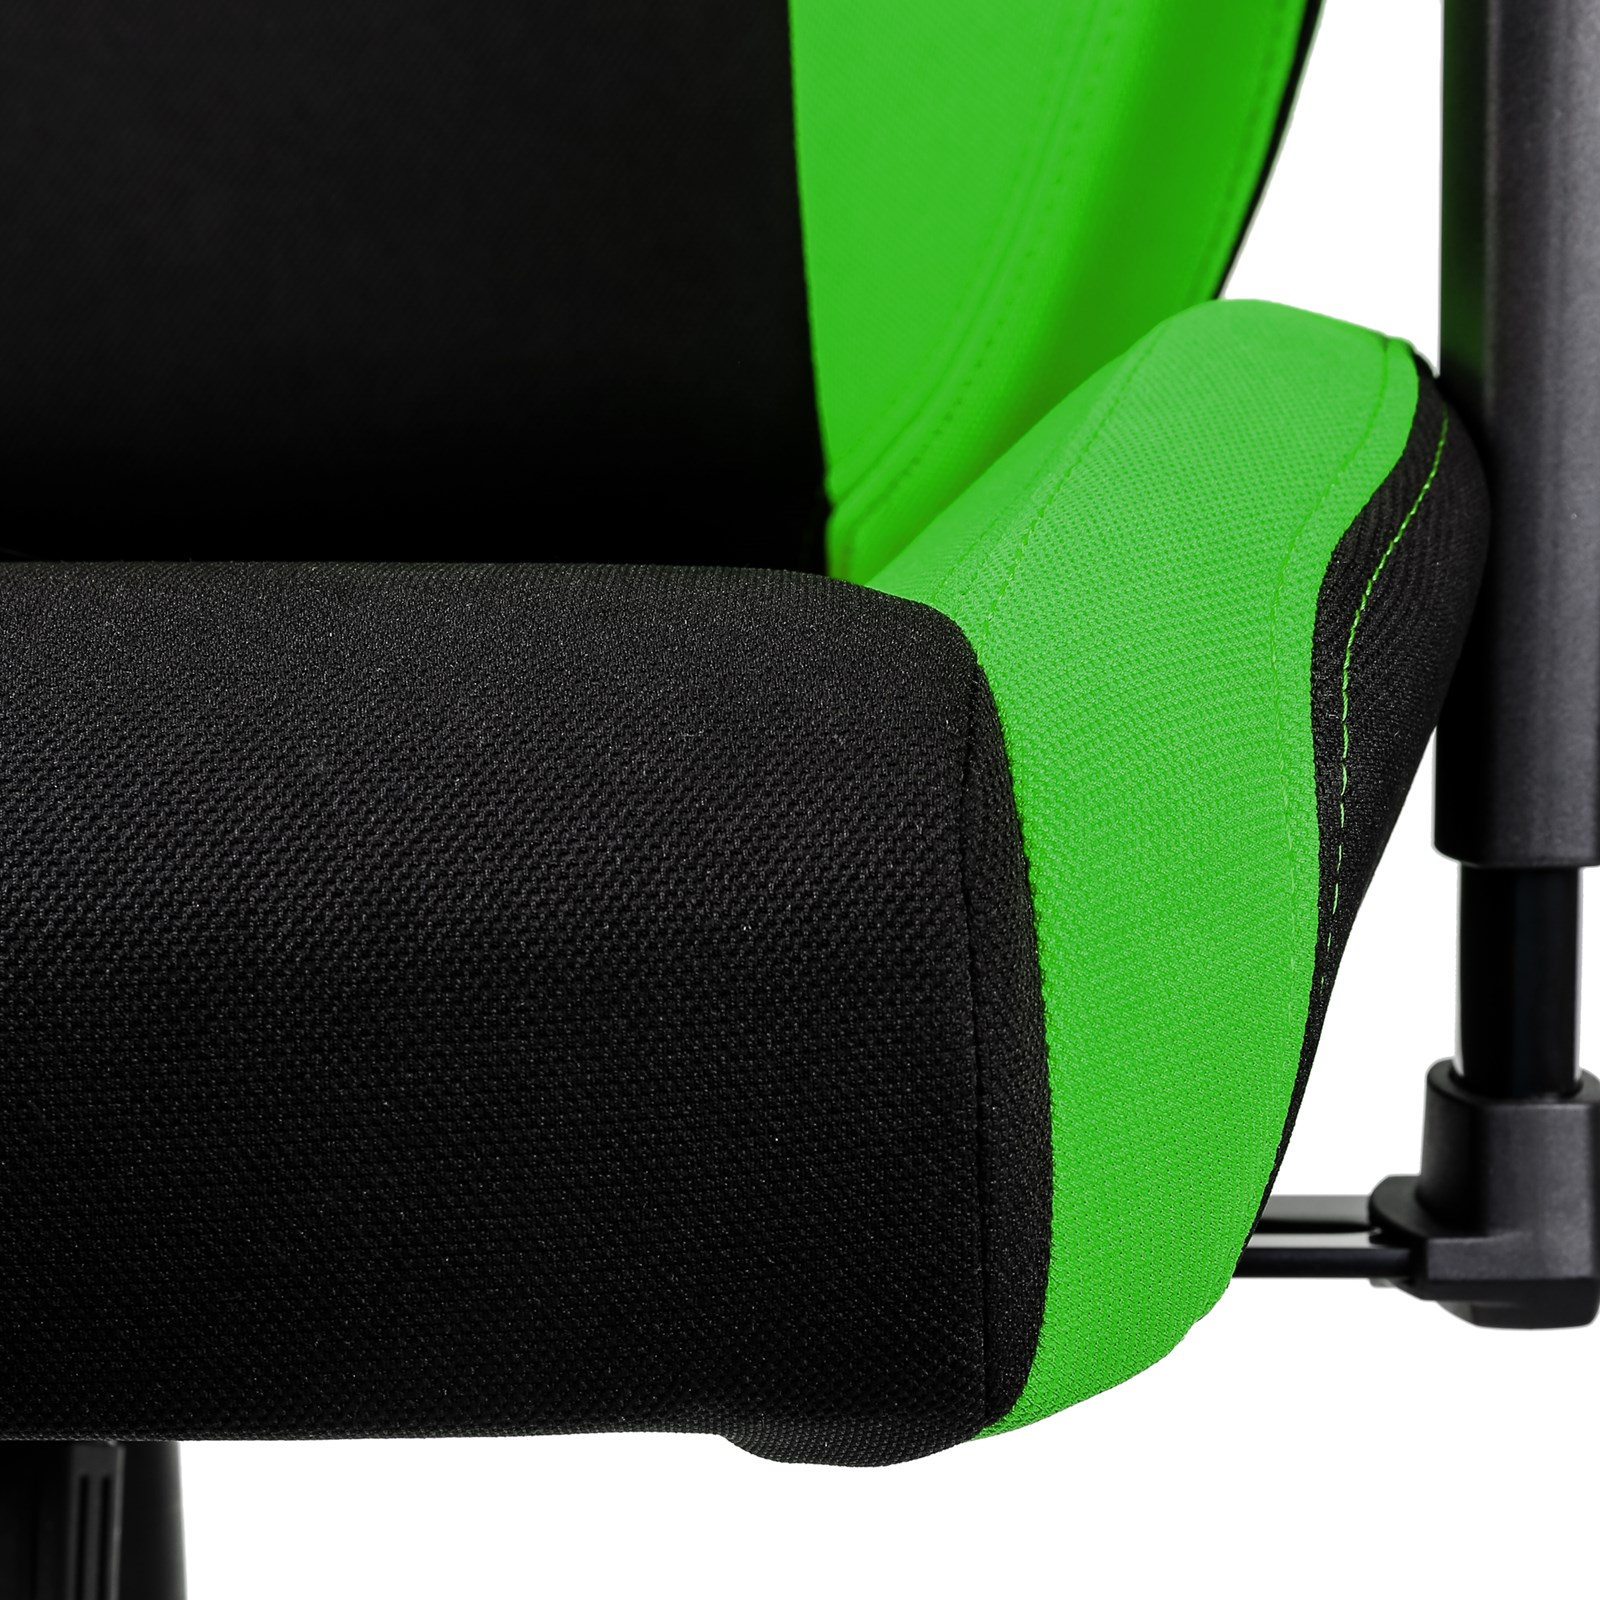 Admirable Nitro Concepts S300 Fabric Gaming Chair Atomic Green Nc Ibusinesslaw Wood Chair Design Ideas Ibusinesslaworg